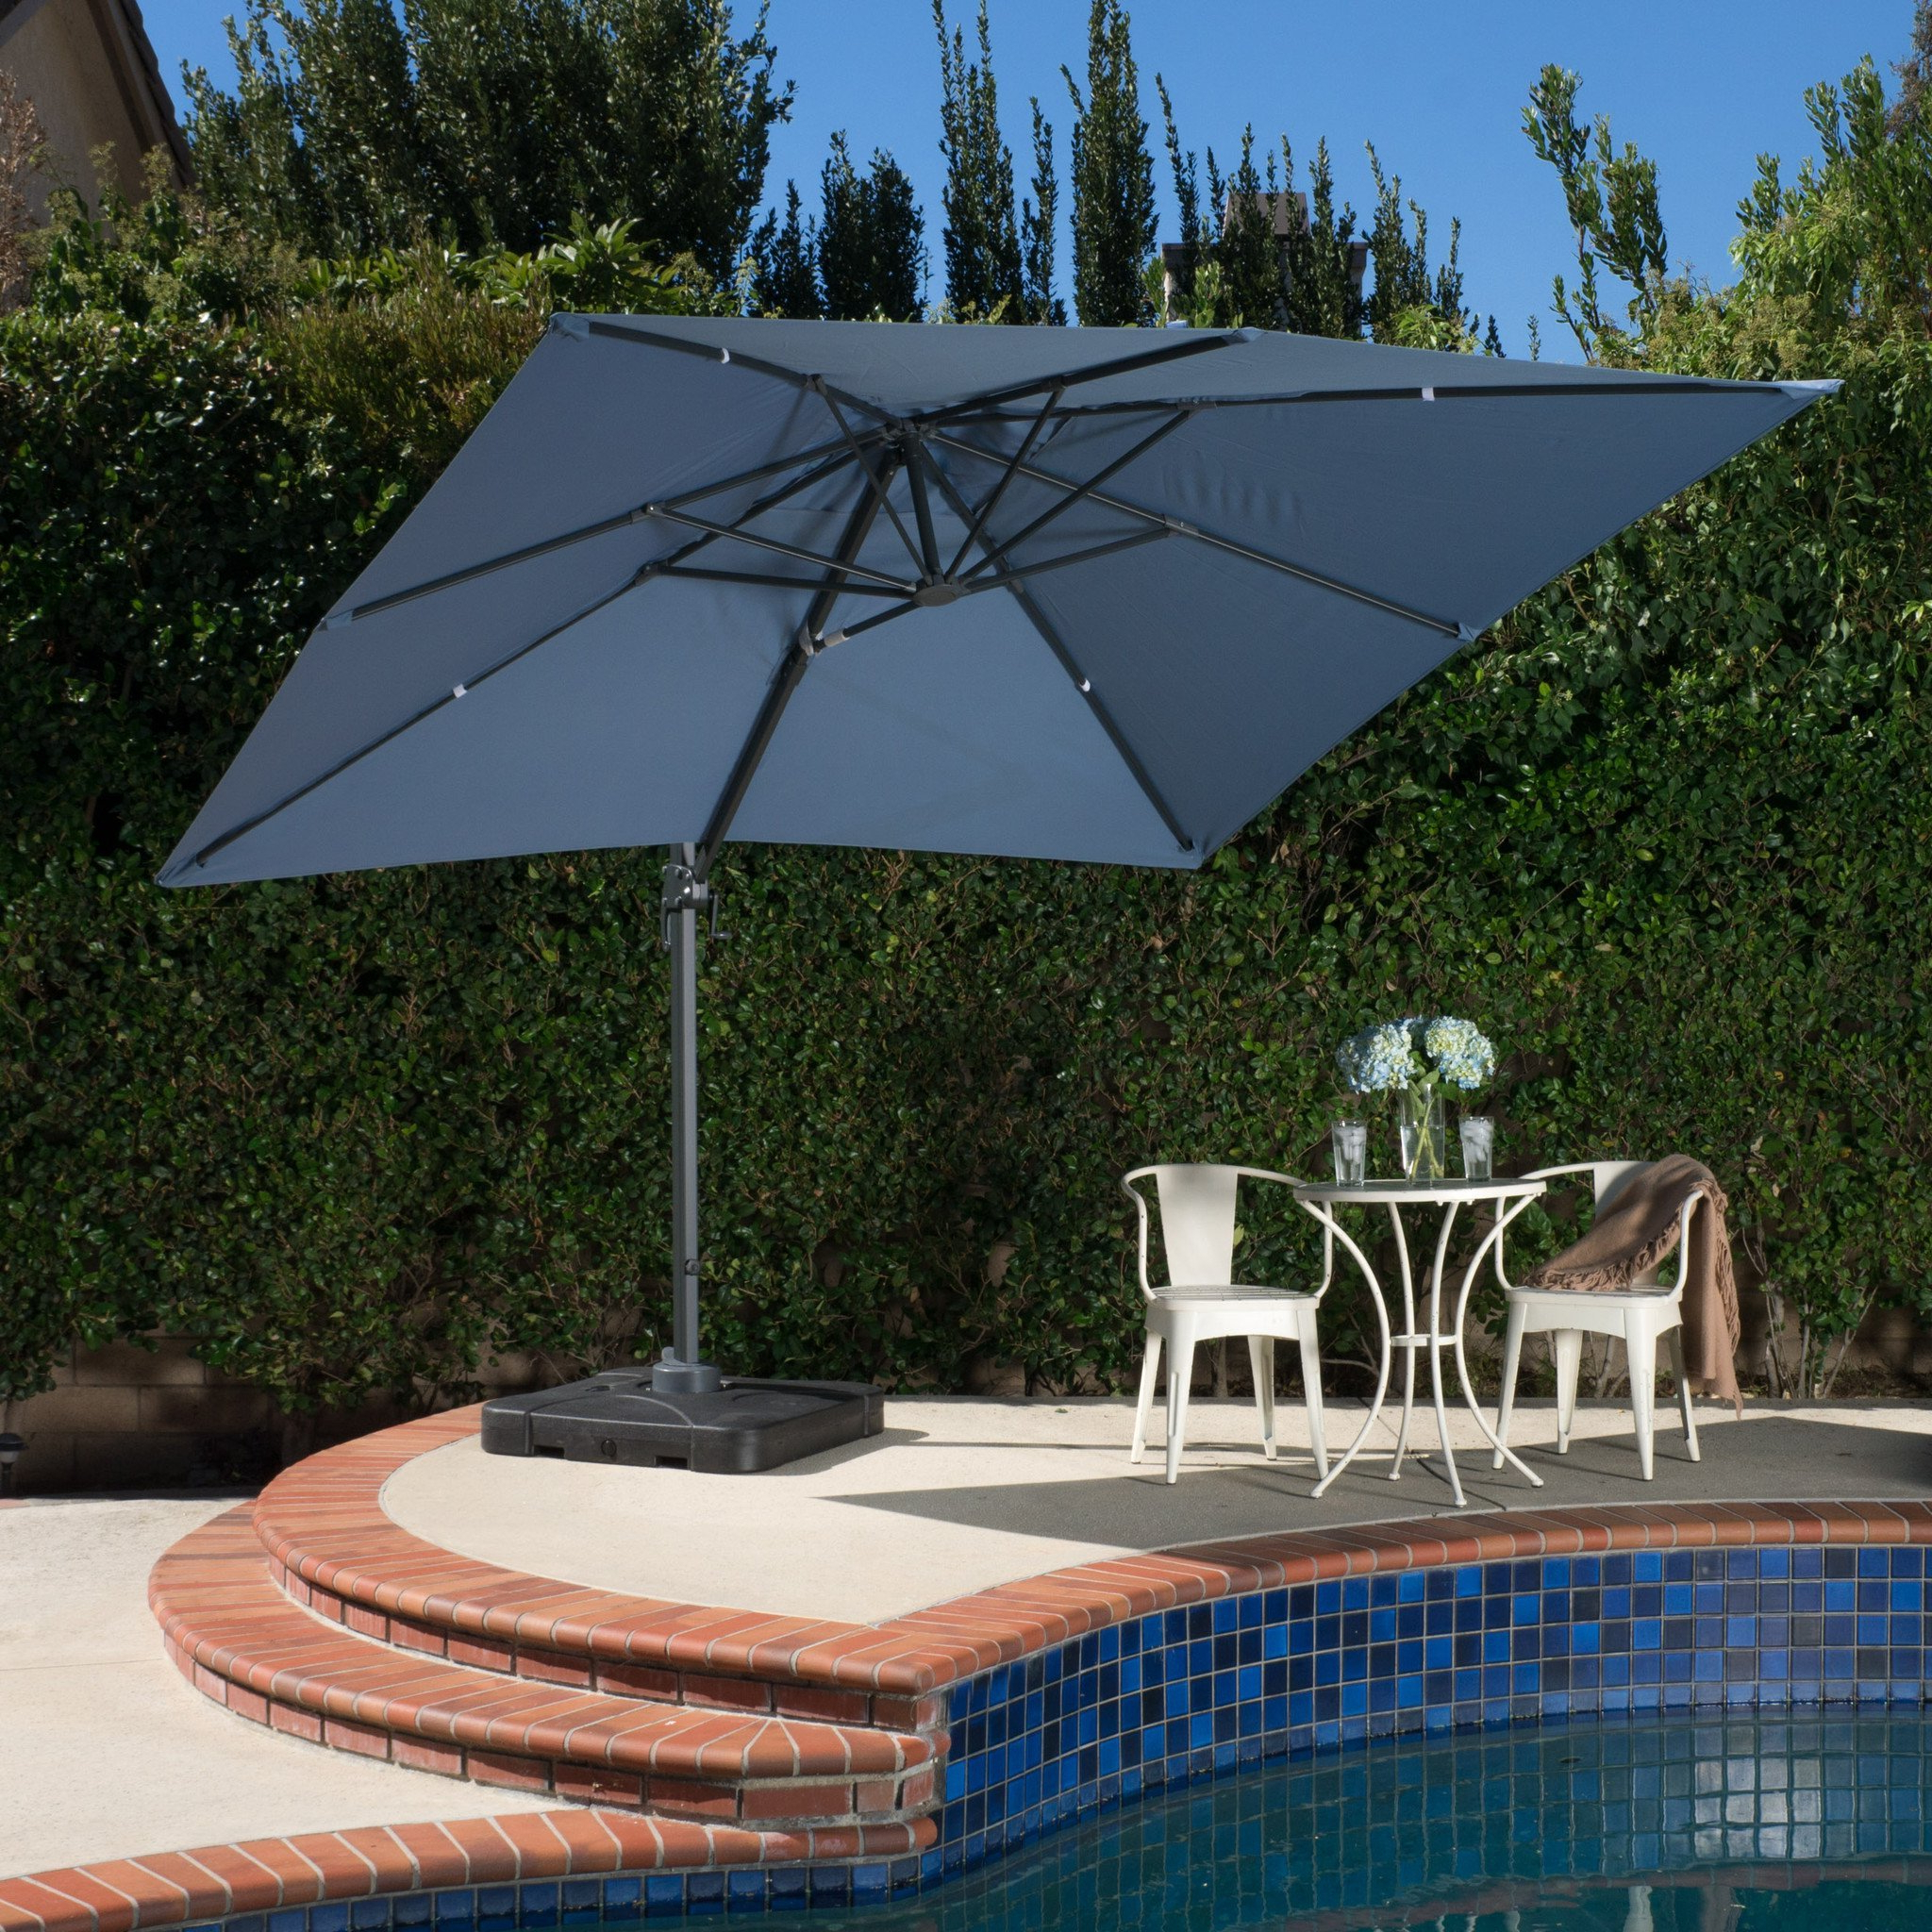 2019 Desmond Rectangular Cantilever Umbrellas Inside Denise Austin Home Sardinia Outdoor 9'8 Foot Canopy Umbrella With Stand (View 11 of 20)